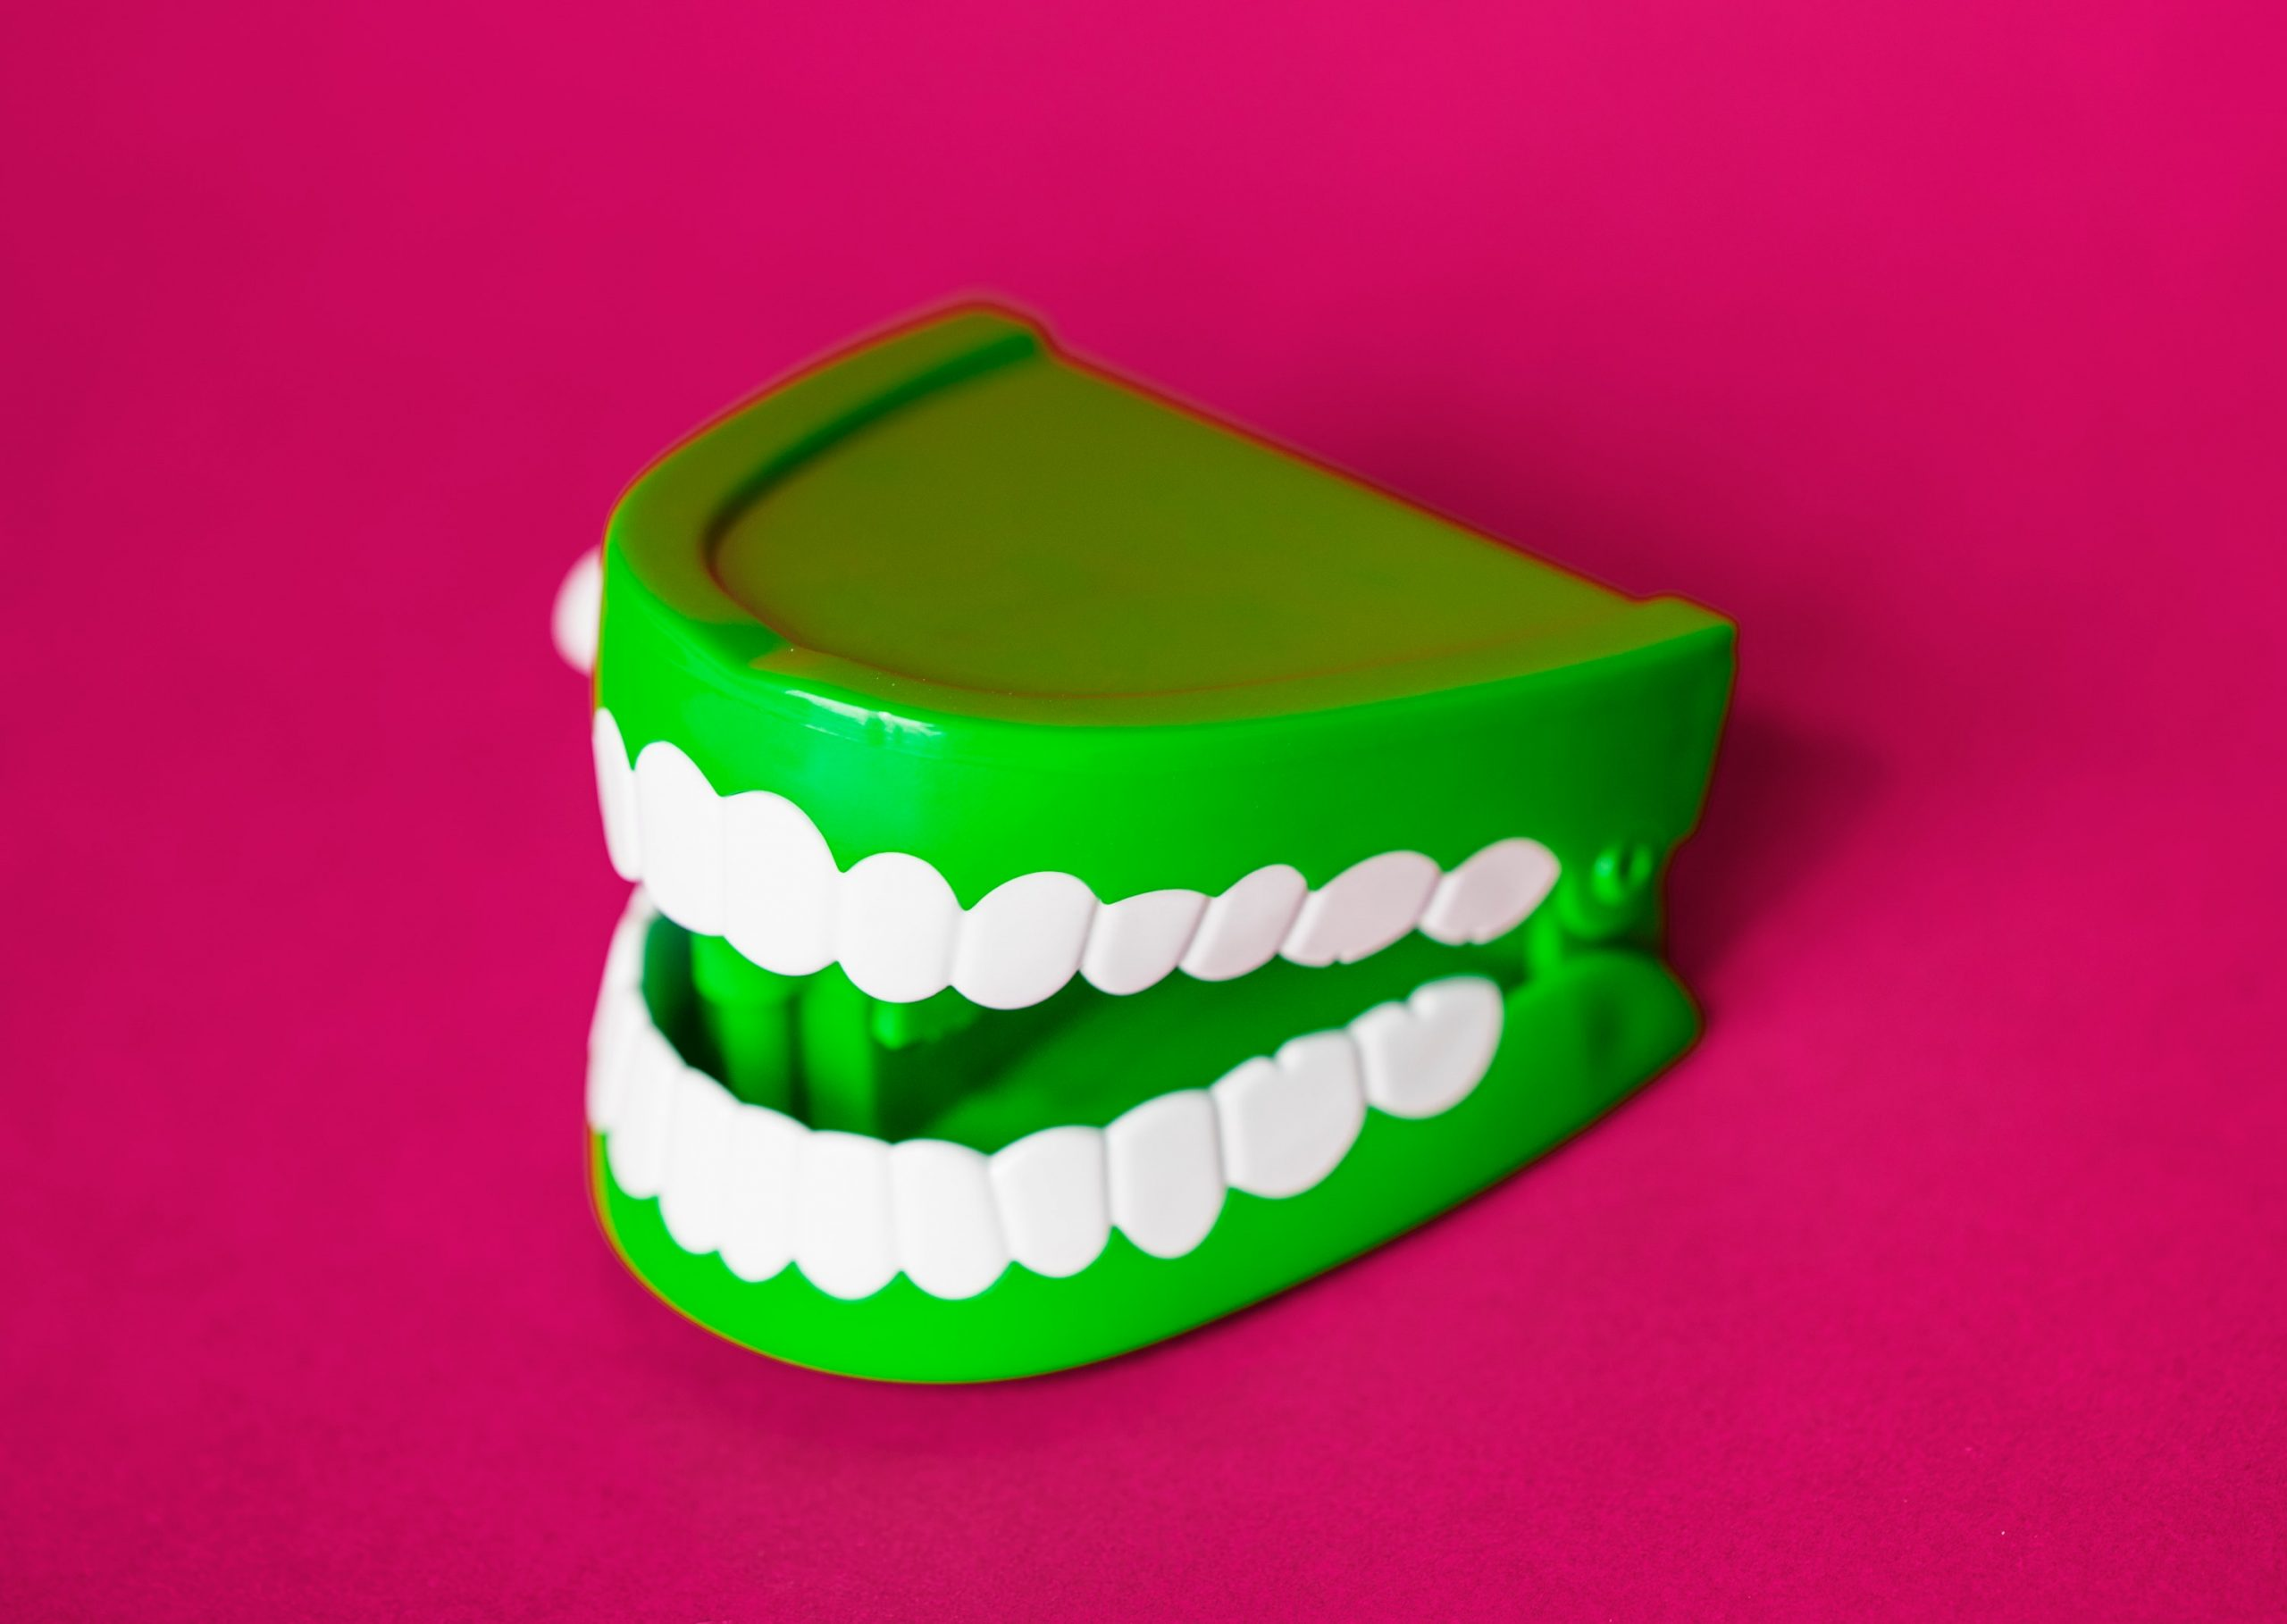 green wind up chattering teeth toy